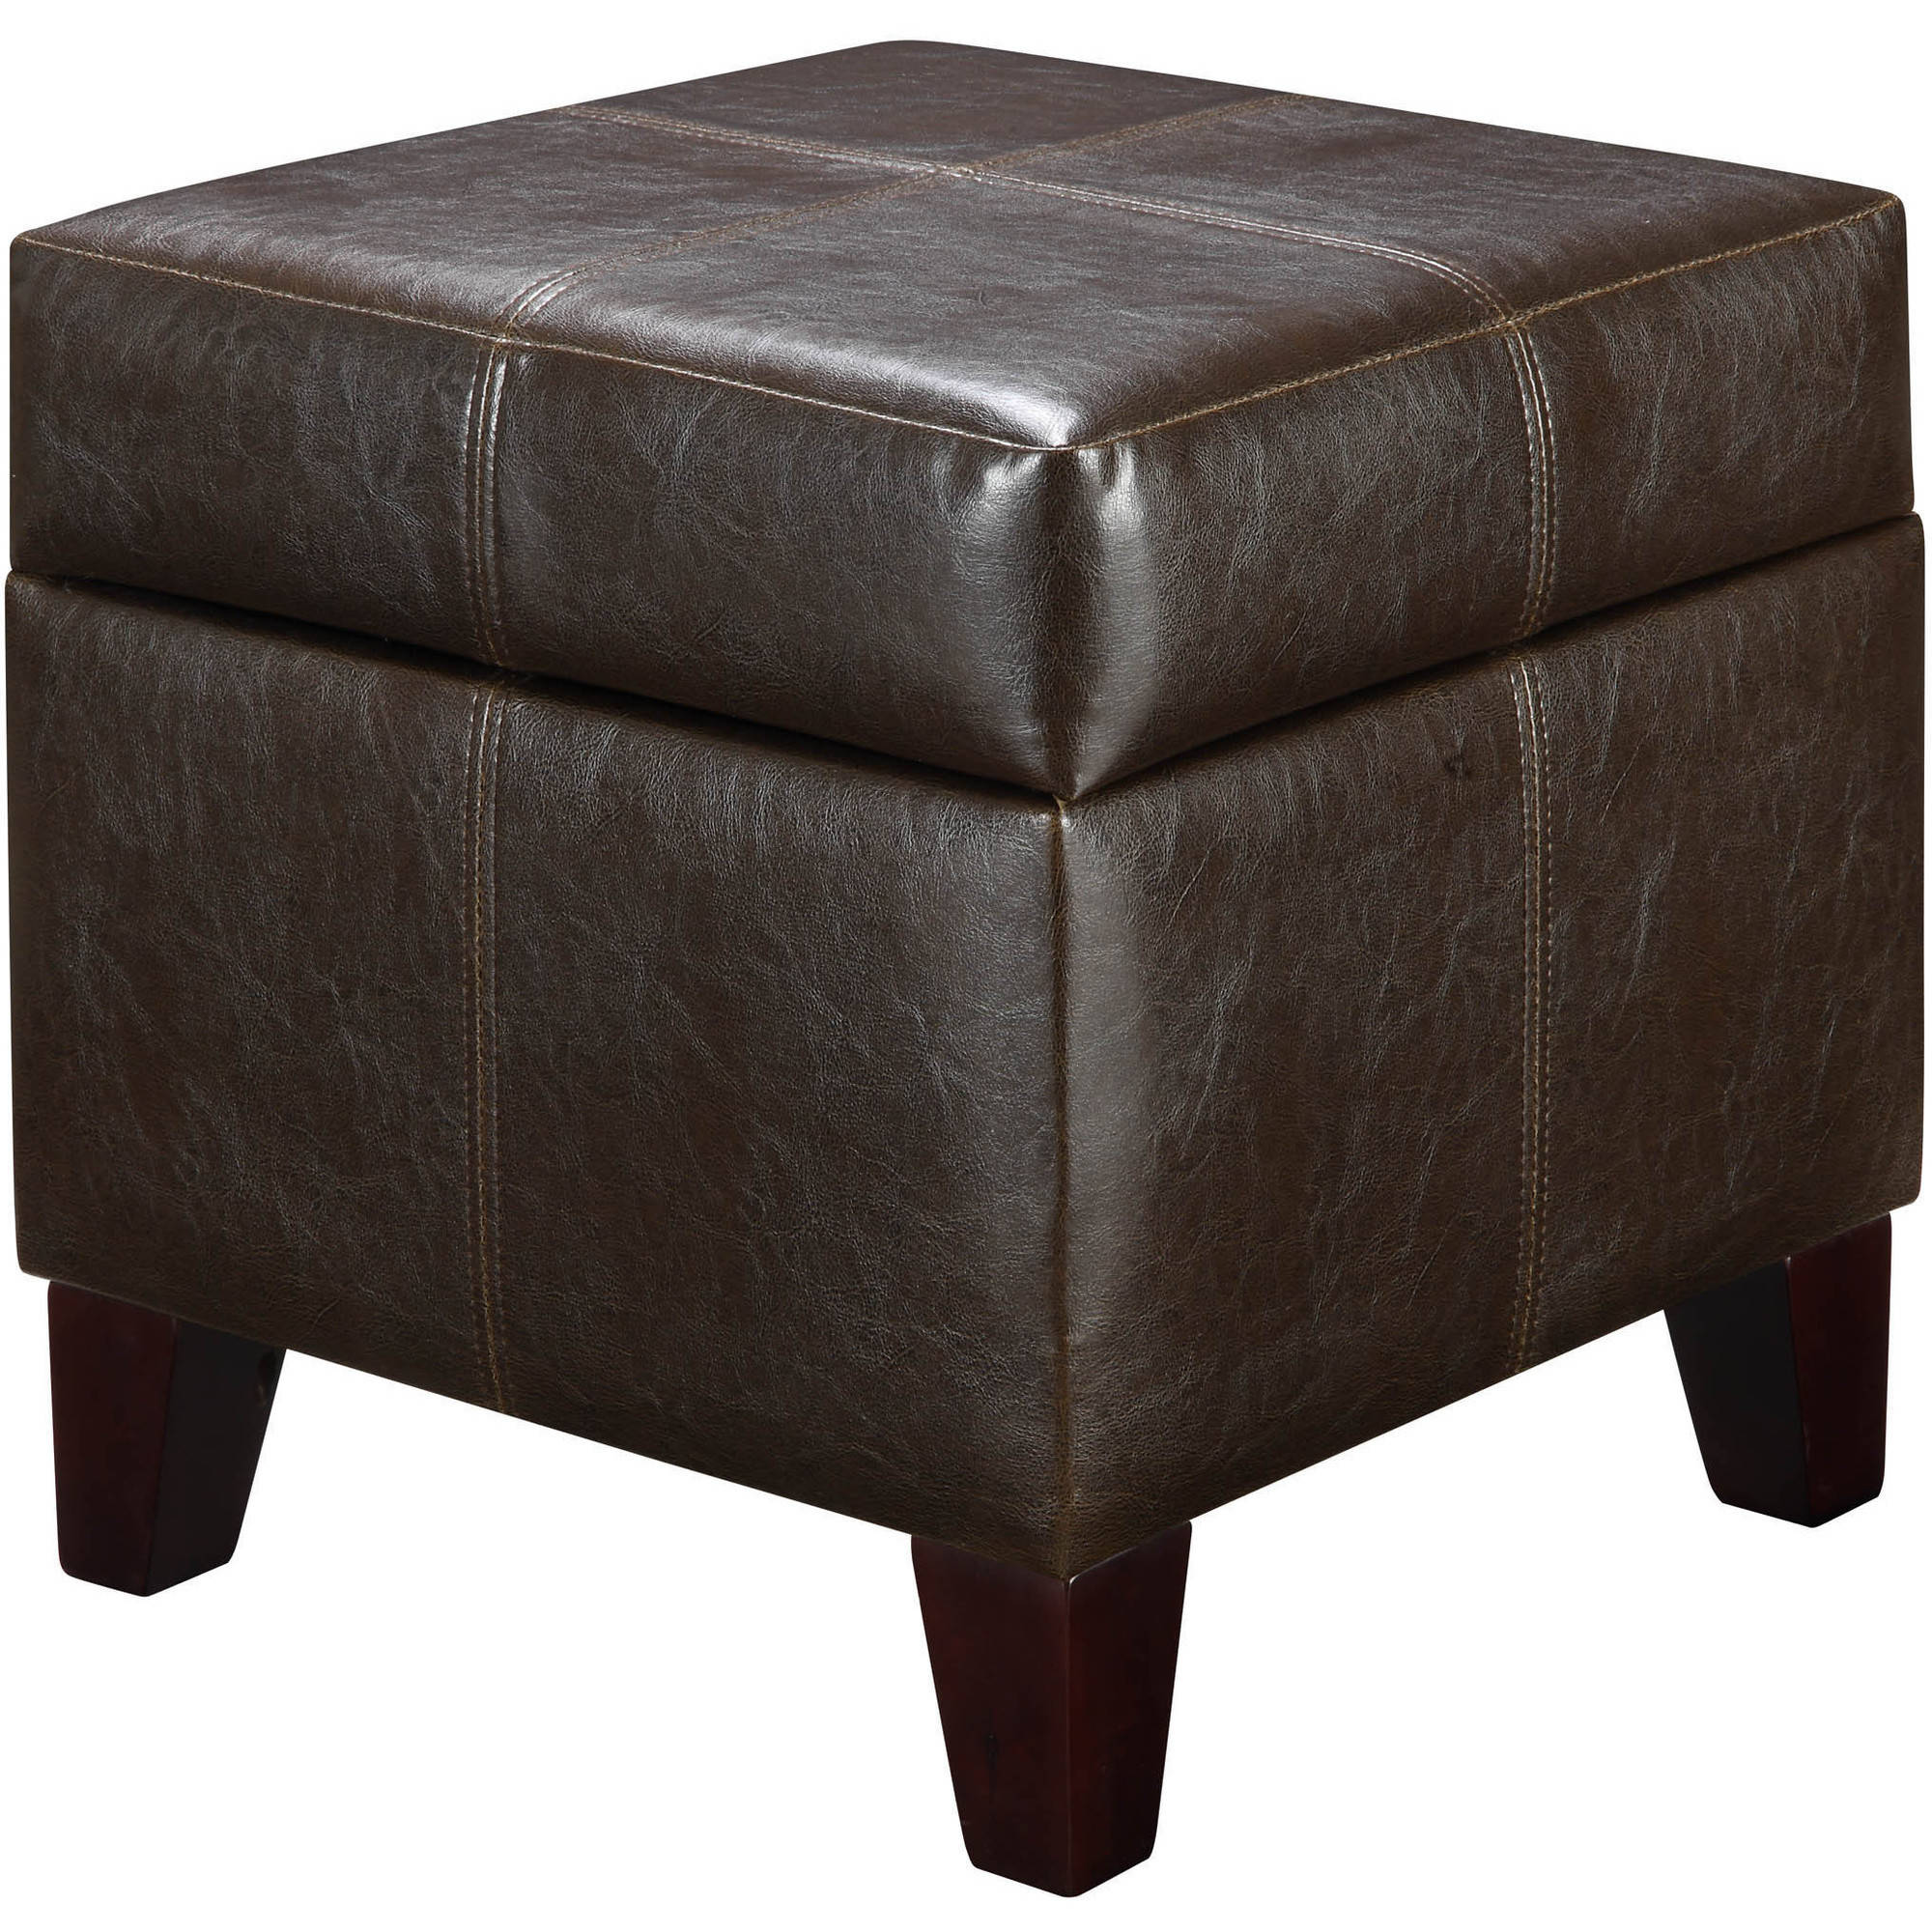 Dorel Home Dorel Home Small Storage Ottoman, Multiple Colors